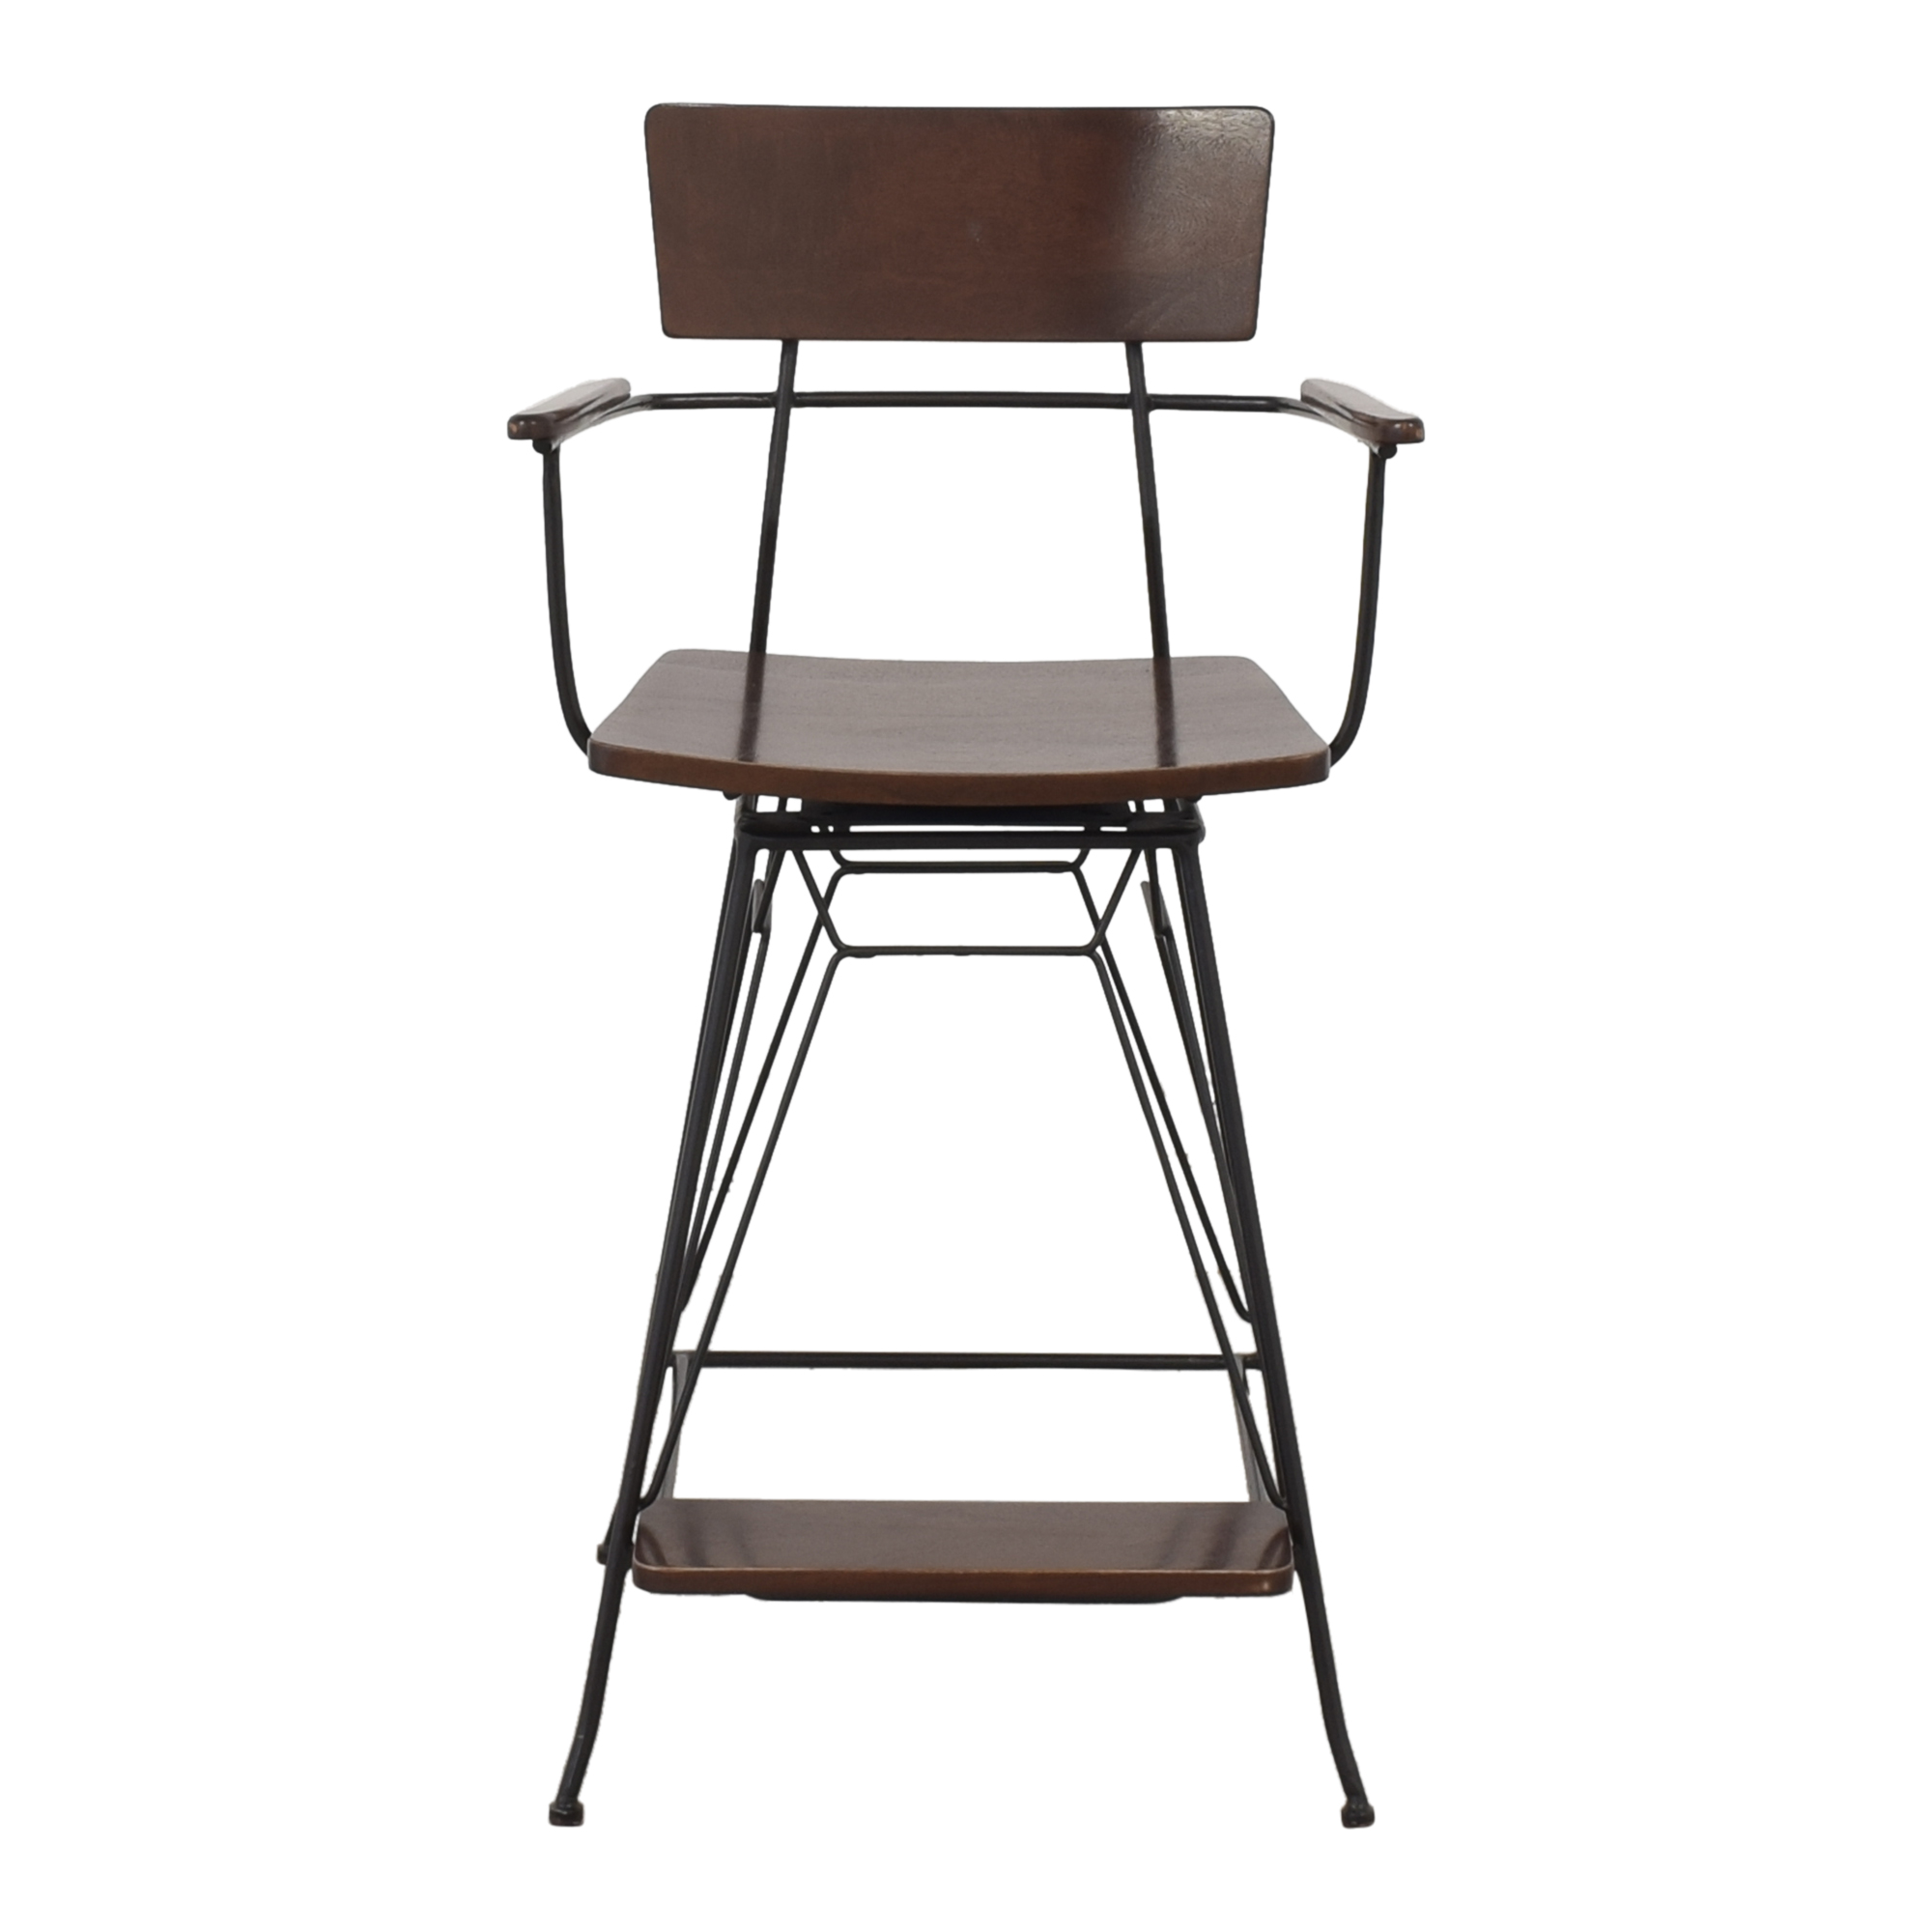 Crate & Barrel Crate & Barrel Elston Swivel Bar Stool brown